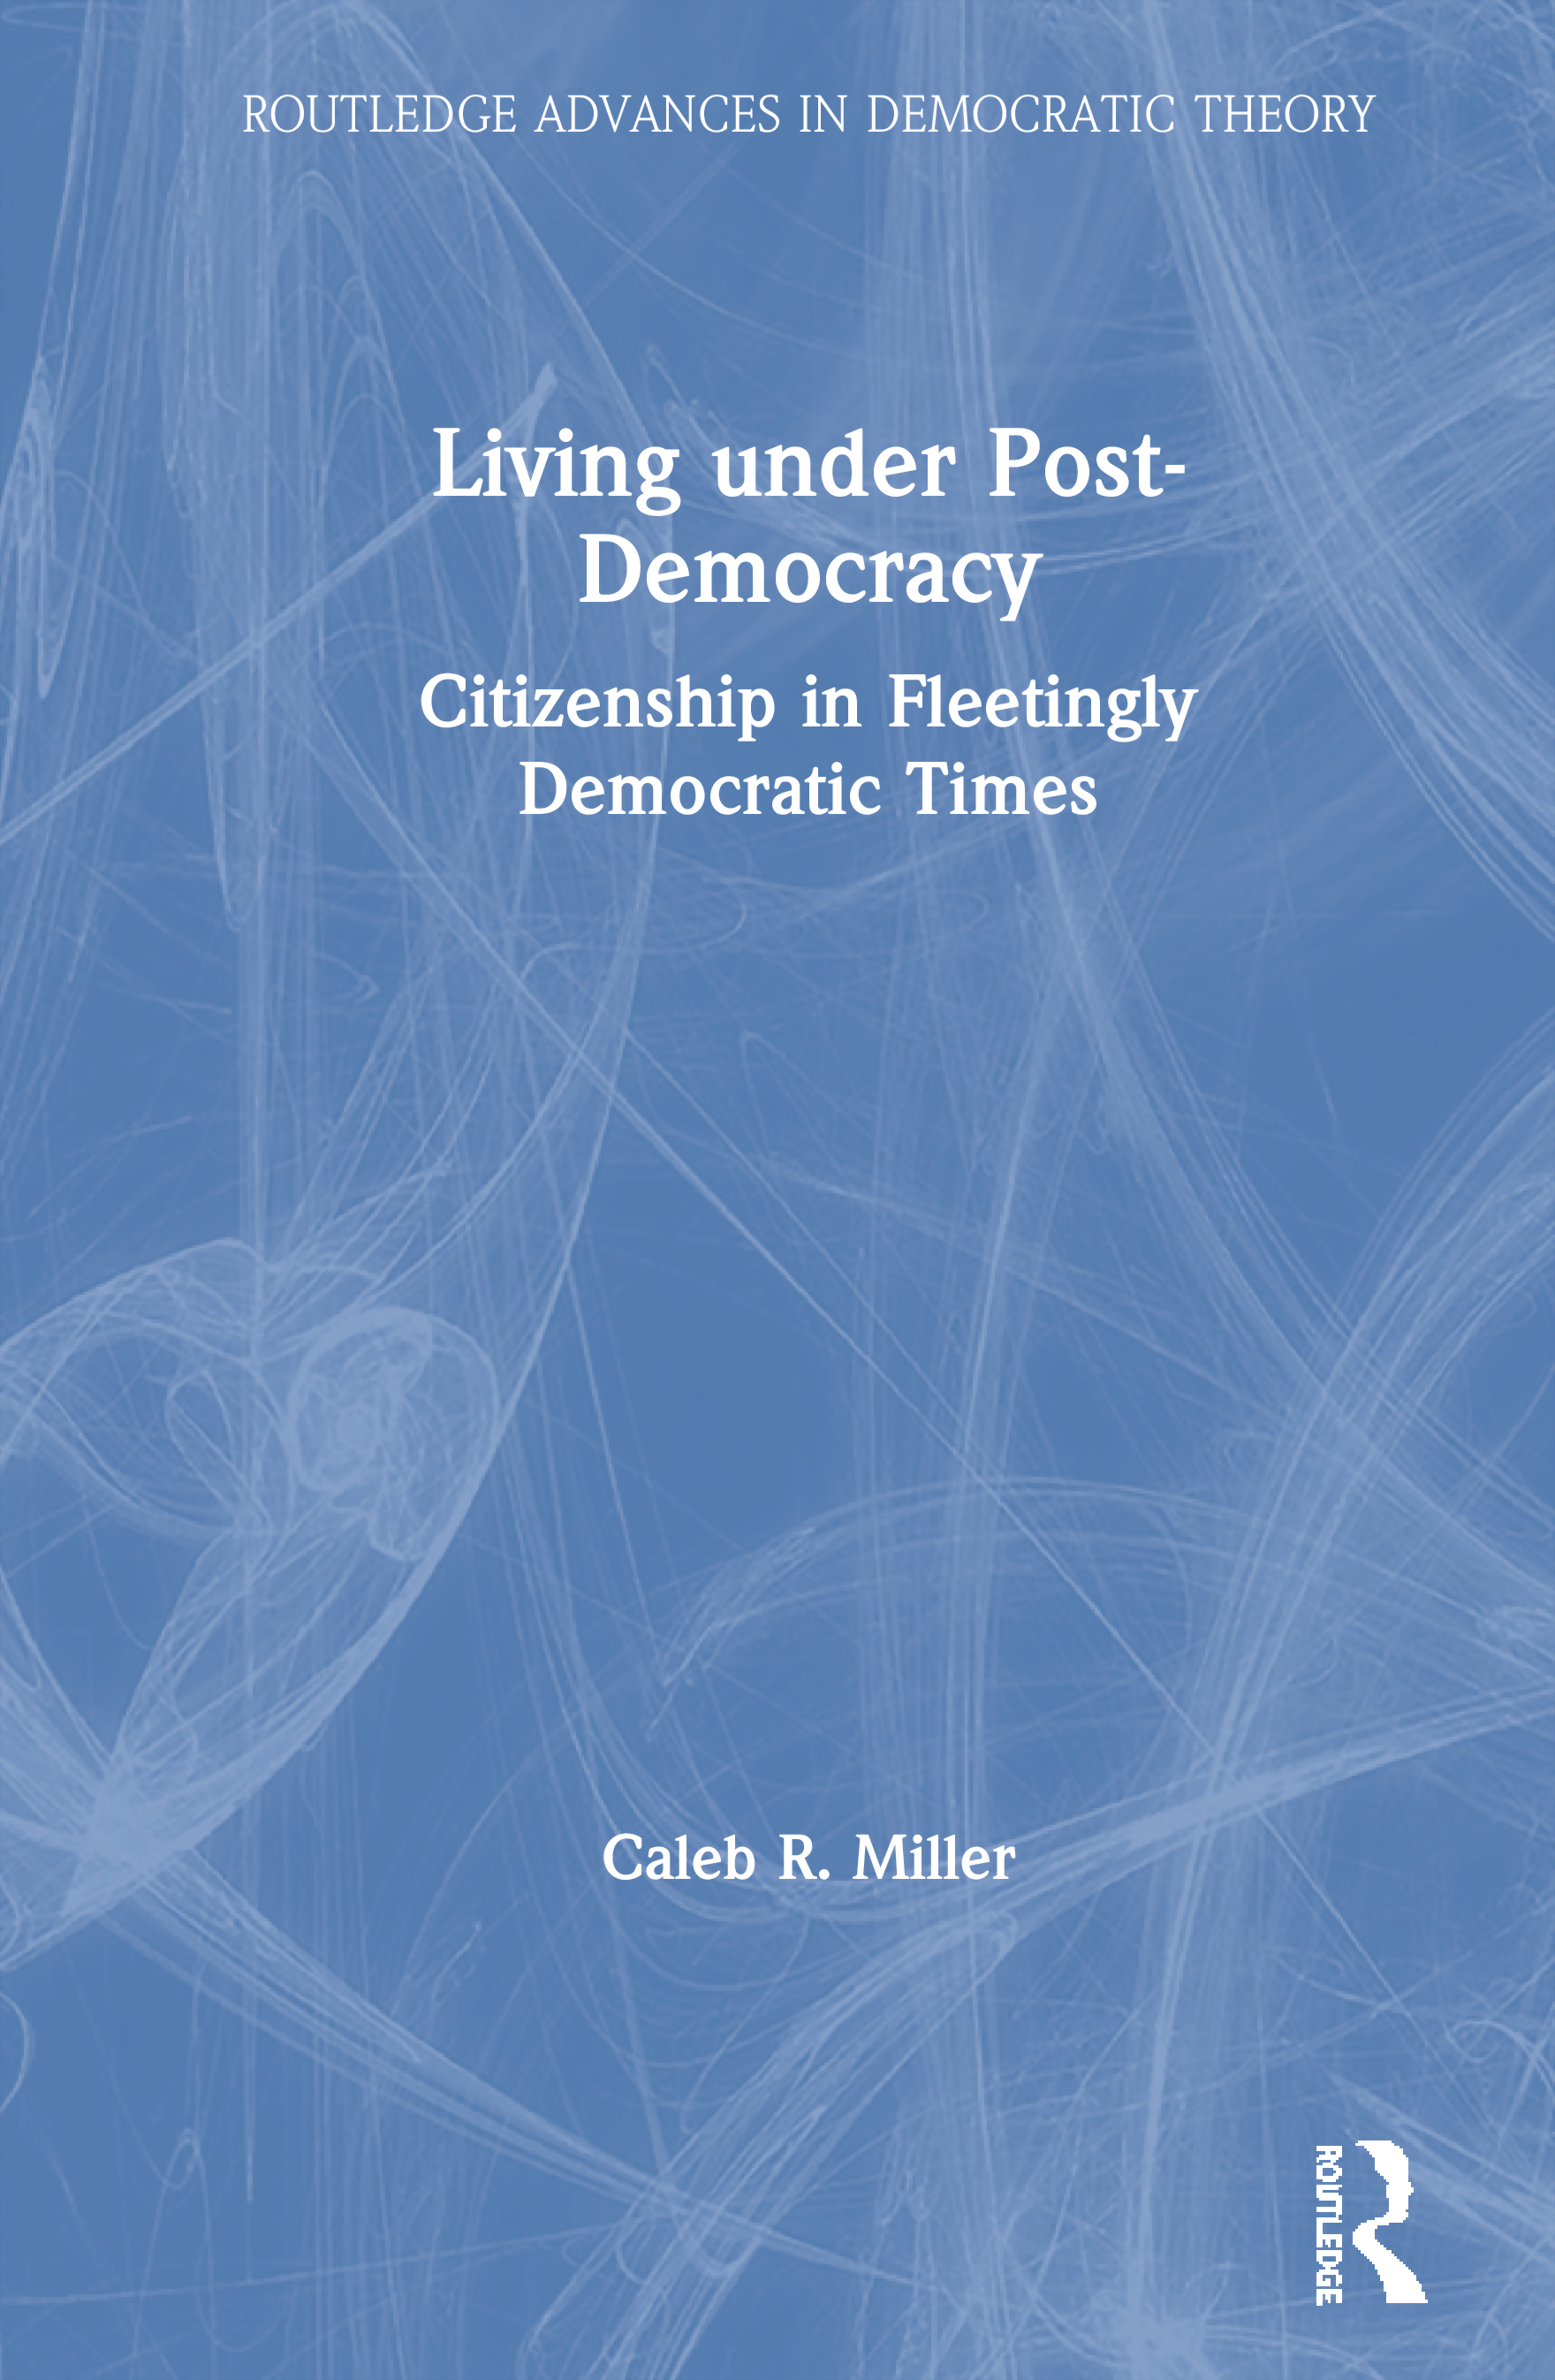 Post-Democratic Citizenship